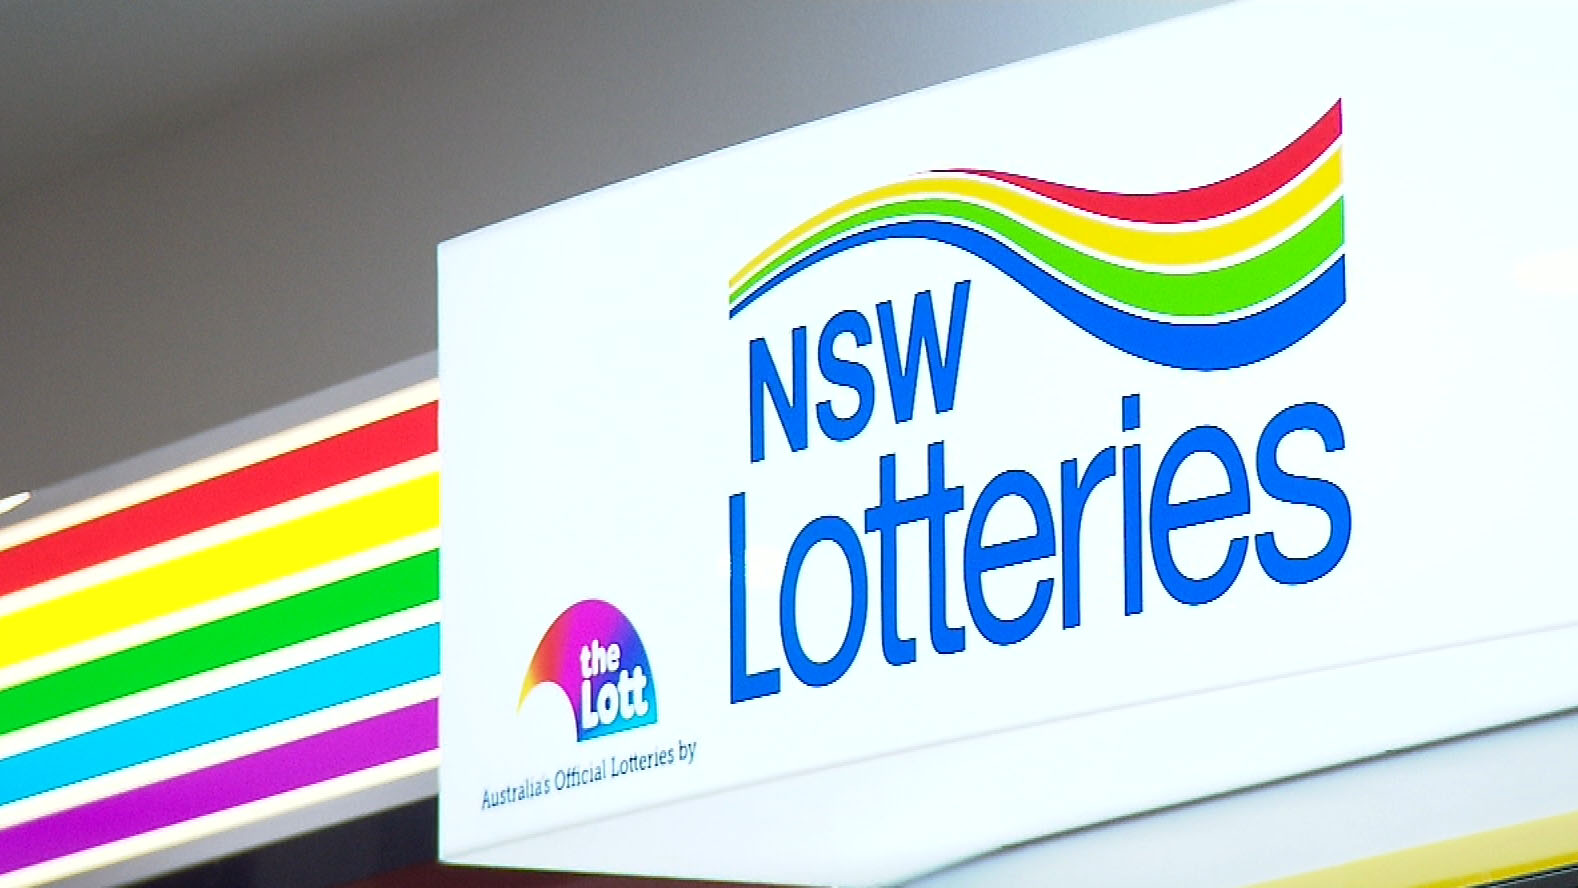 Man wins lottery using late father's numbers